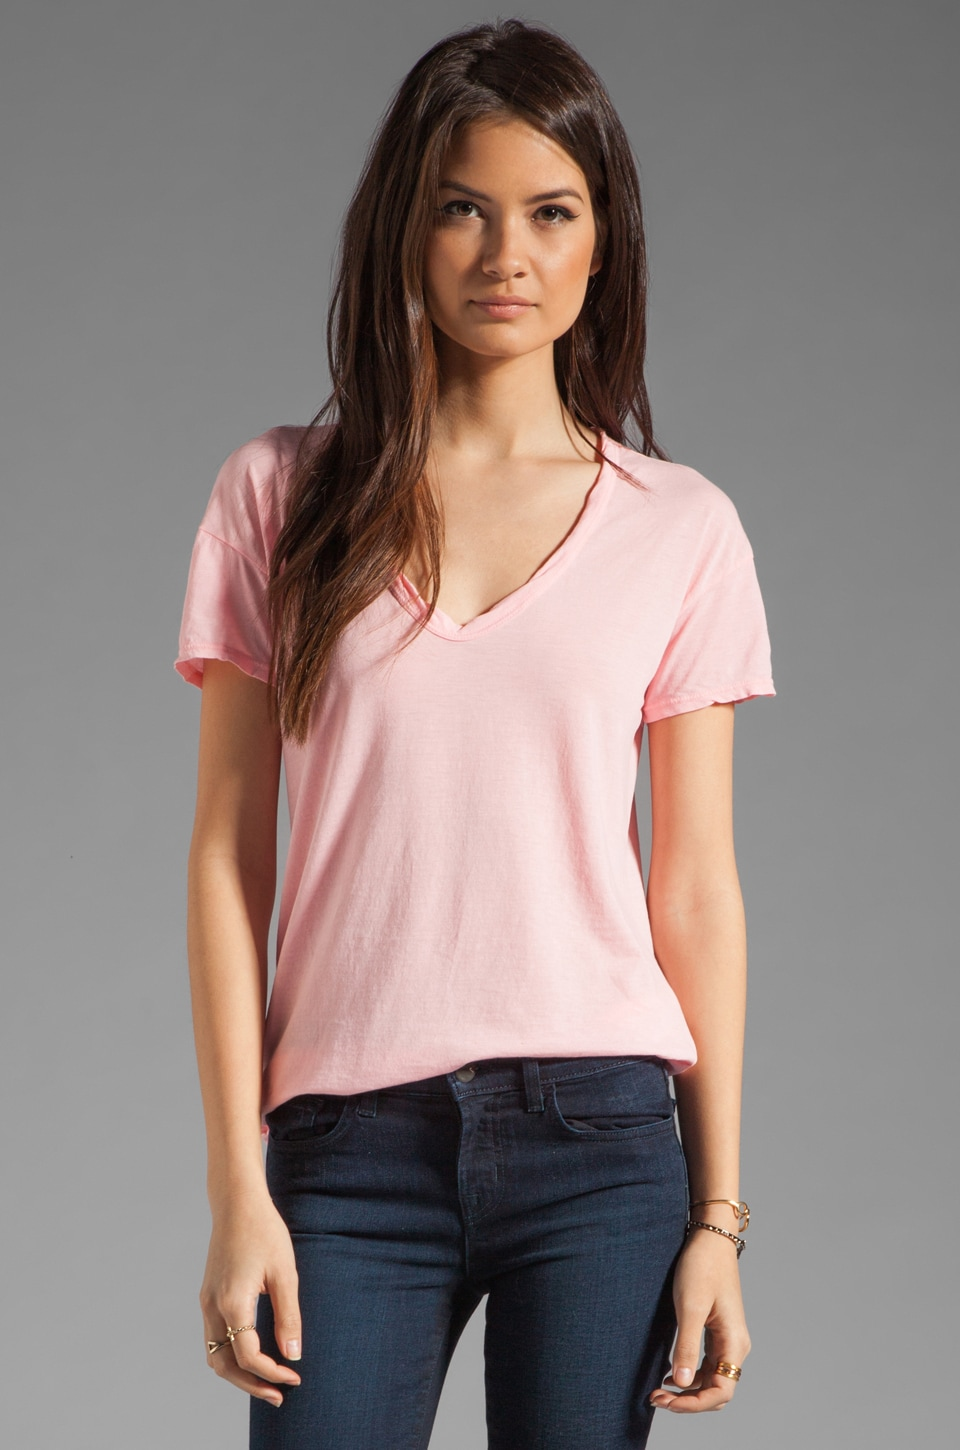 James Perse Relaxed Fit Soft V Short Sleeve Tee in Peony